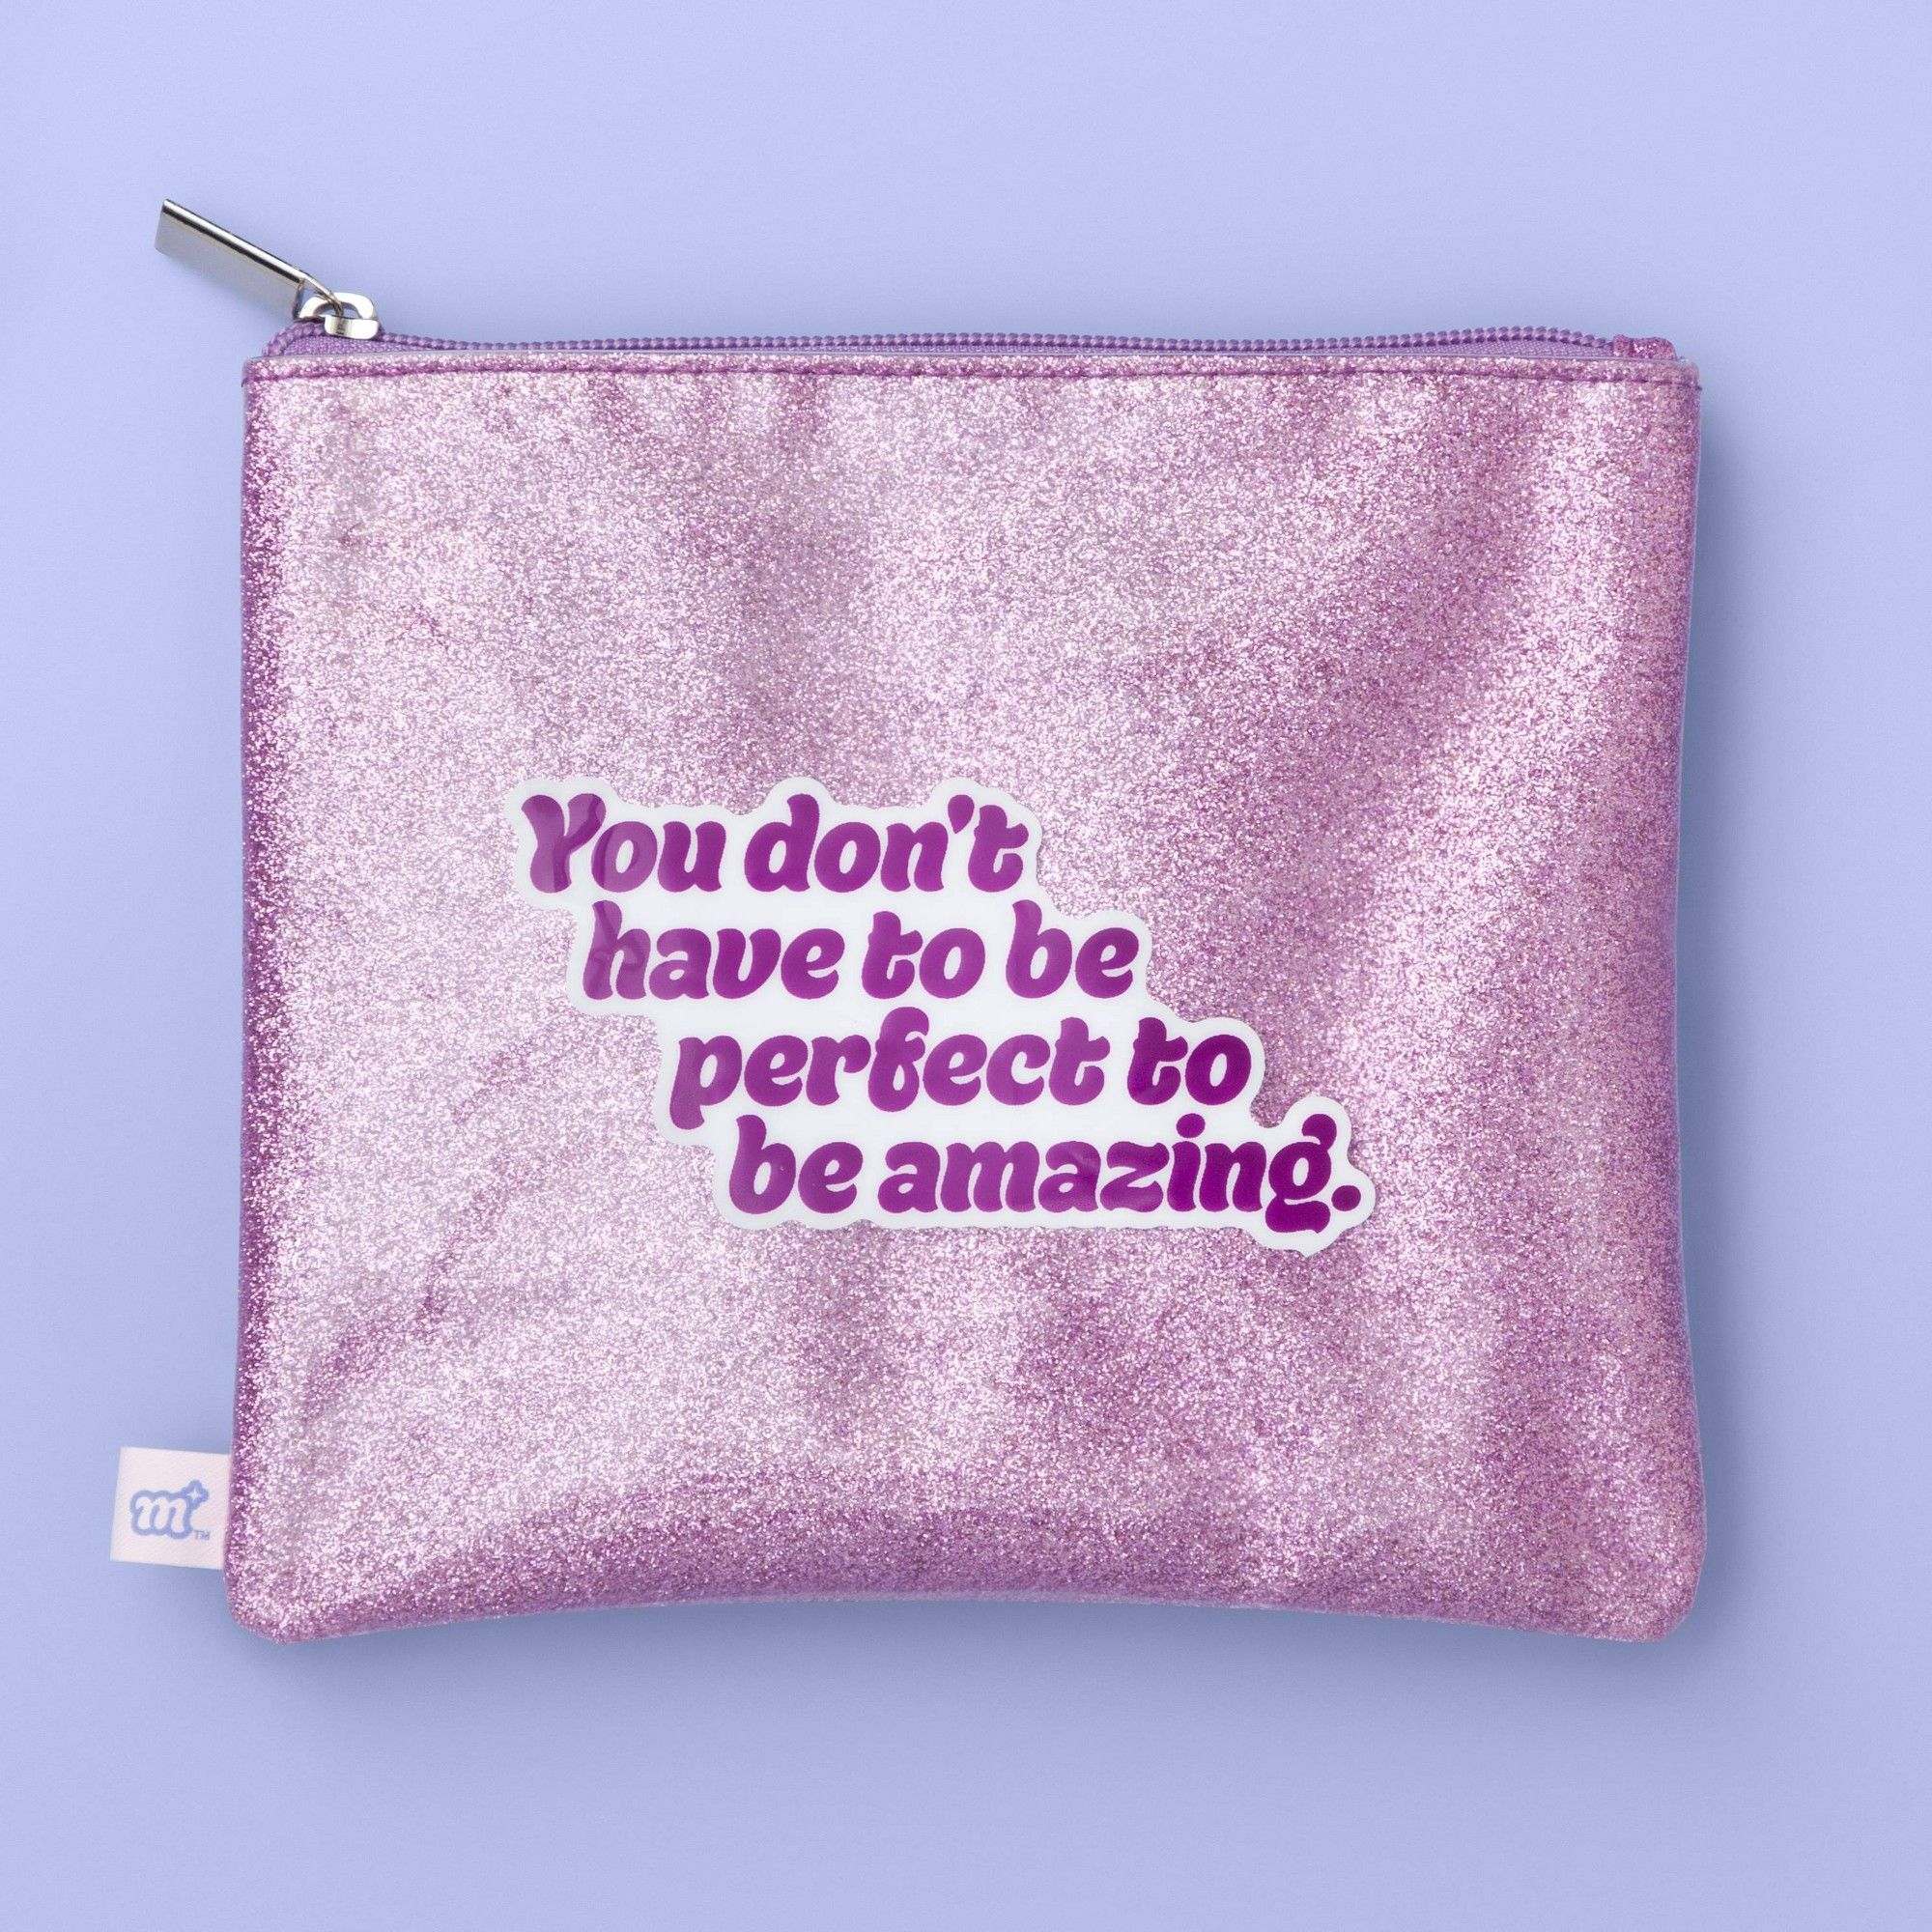 Glitter Makeup Bag More Than Magic™ Pink (With images